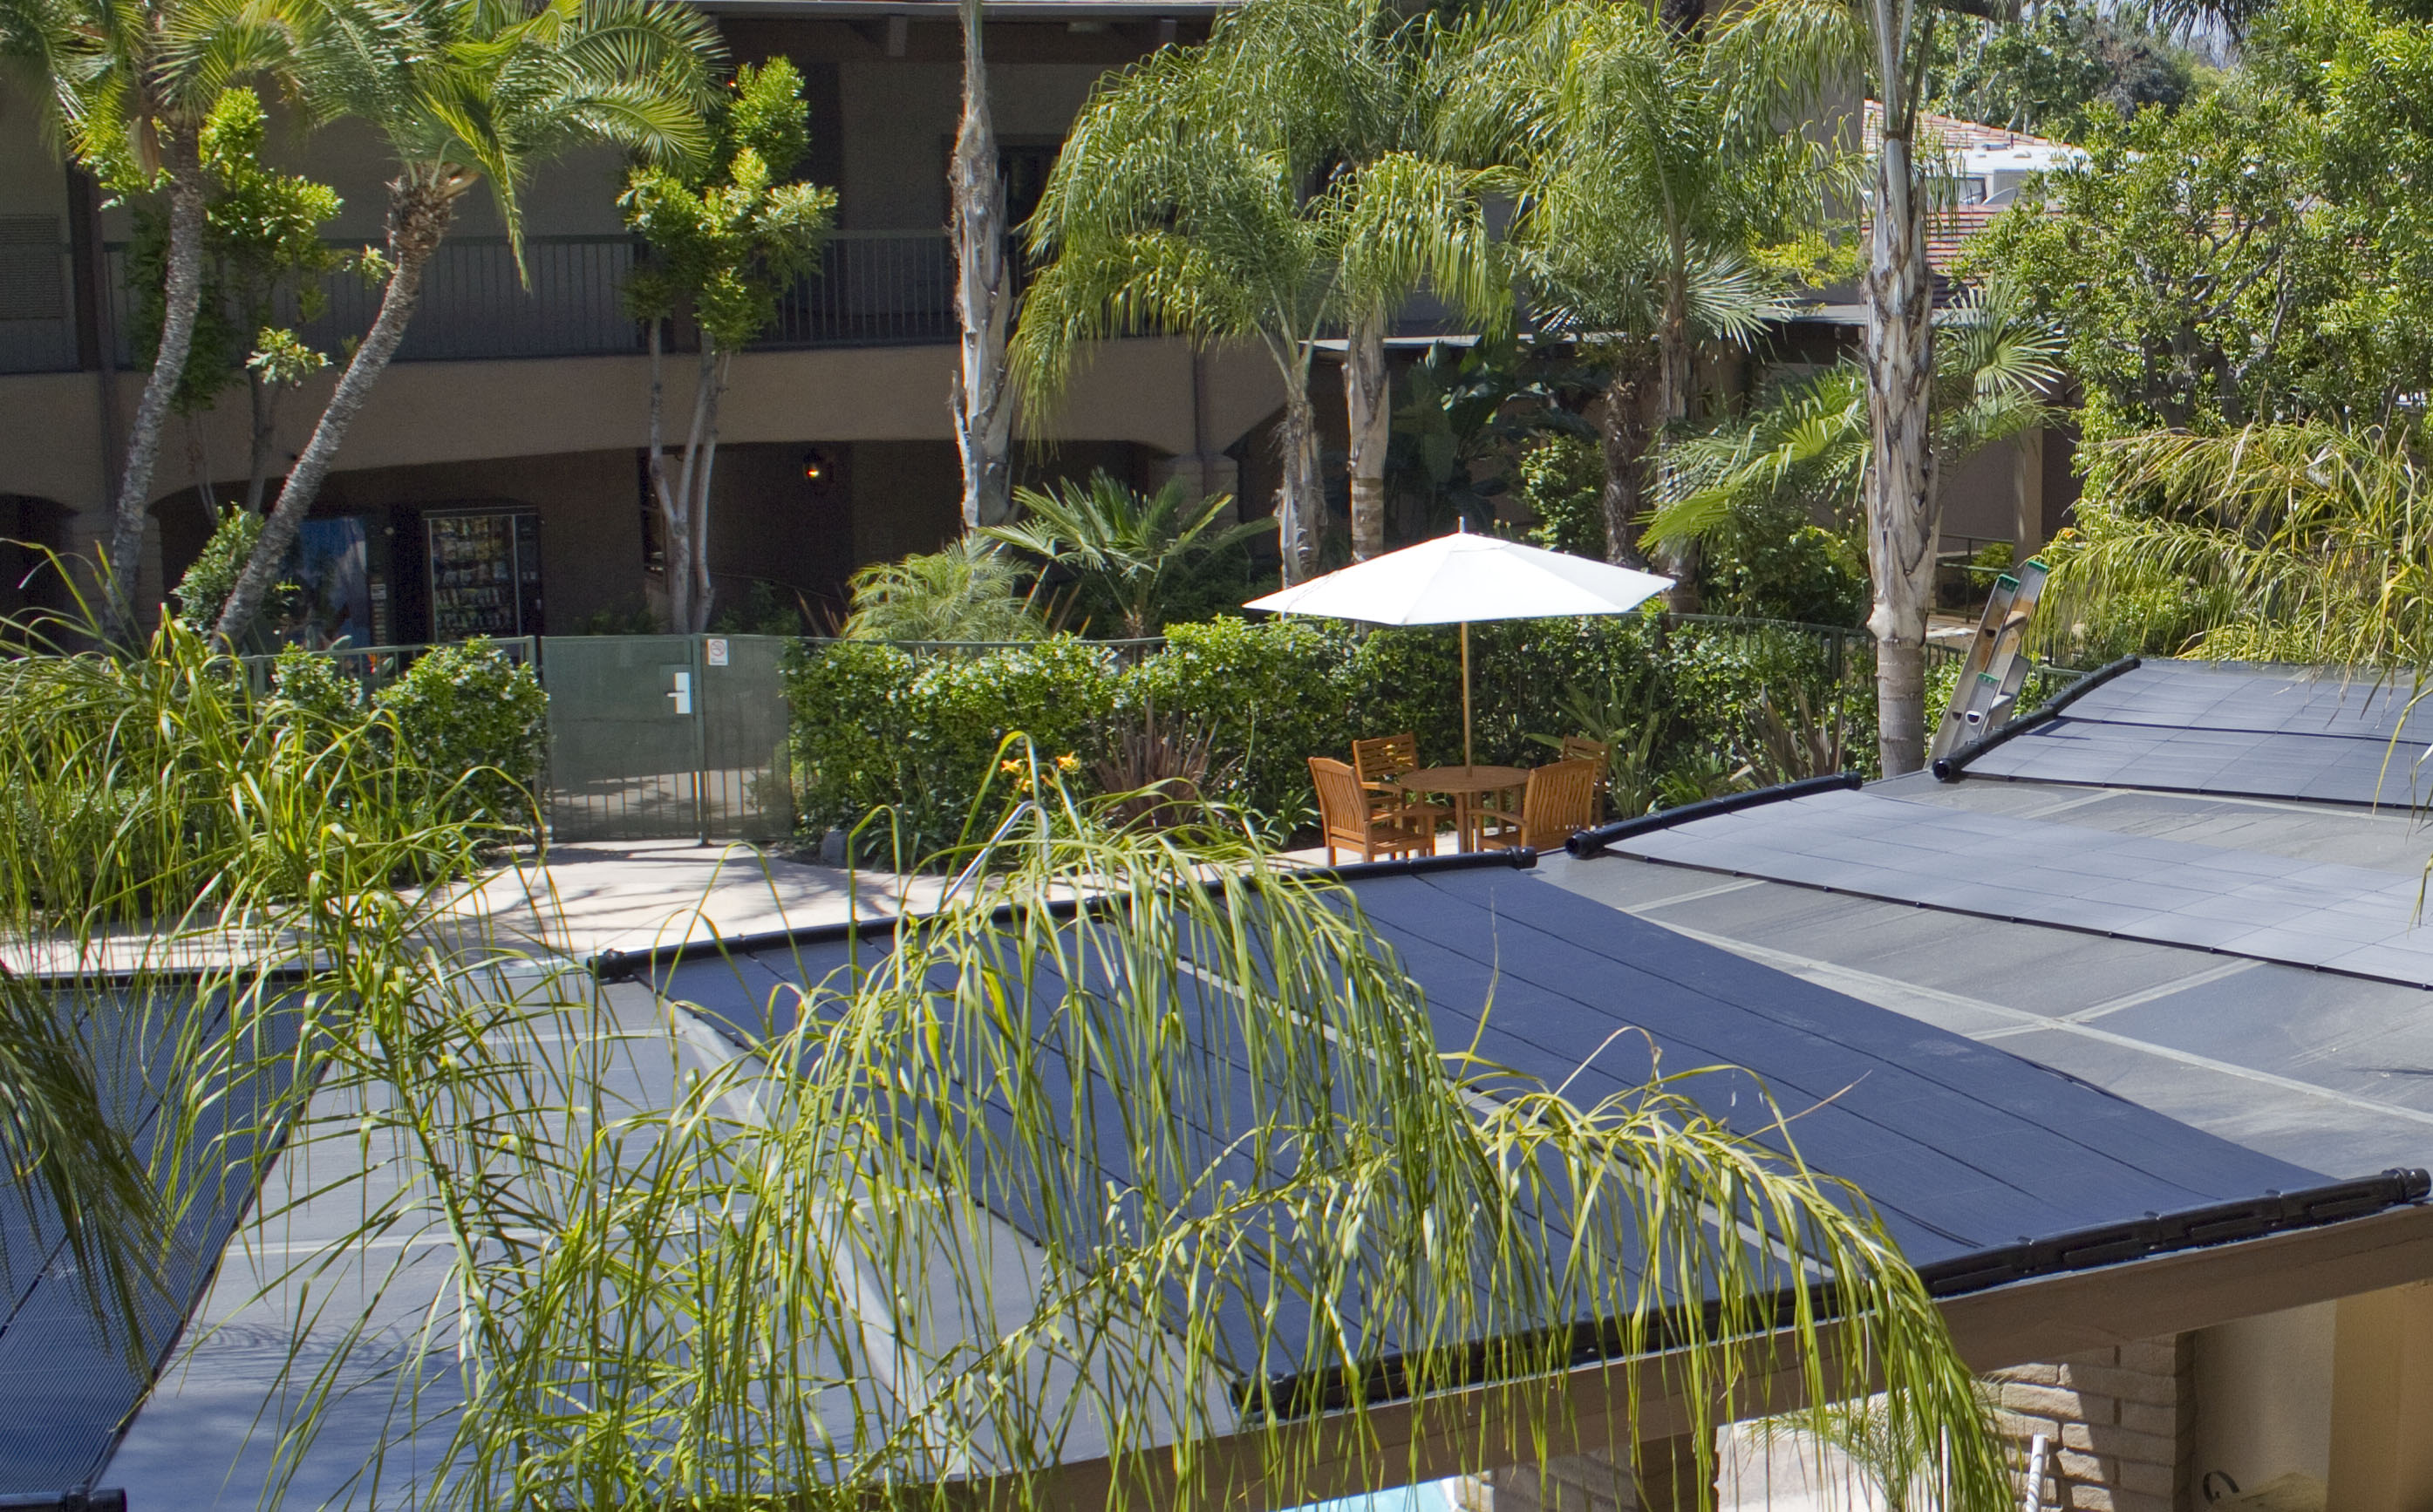 Doubletree saved over $1000 per month by going solar.